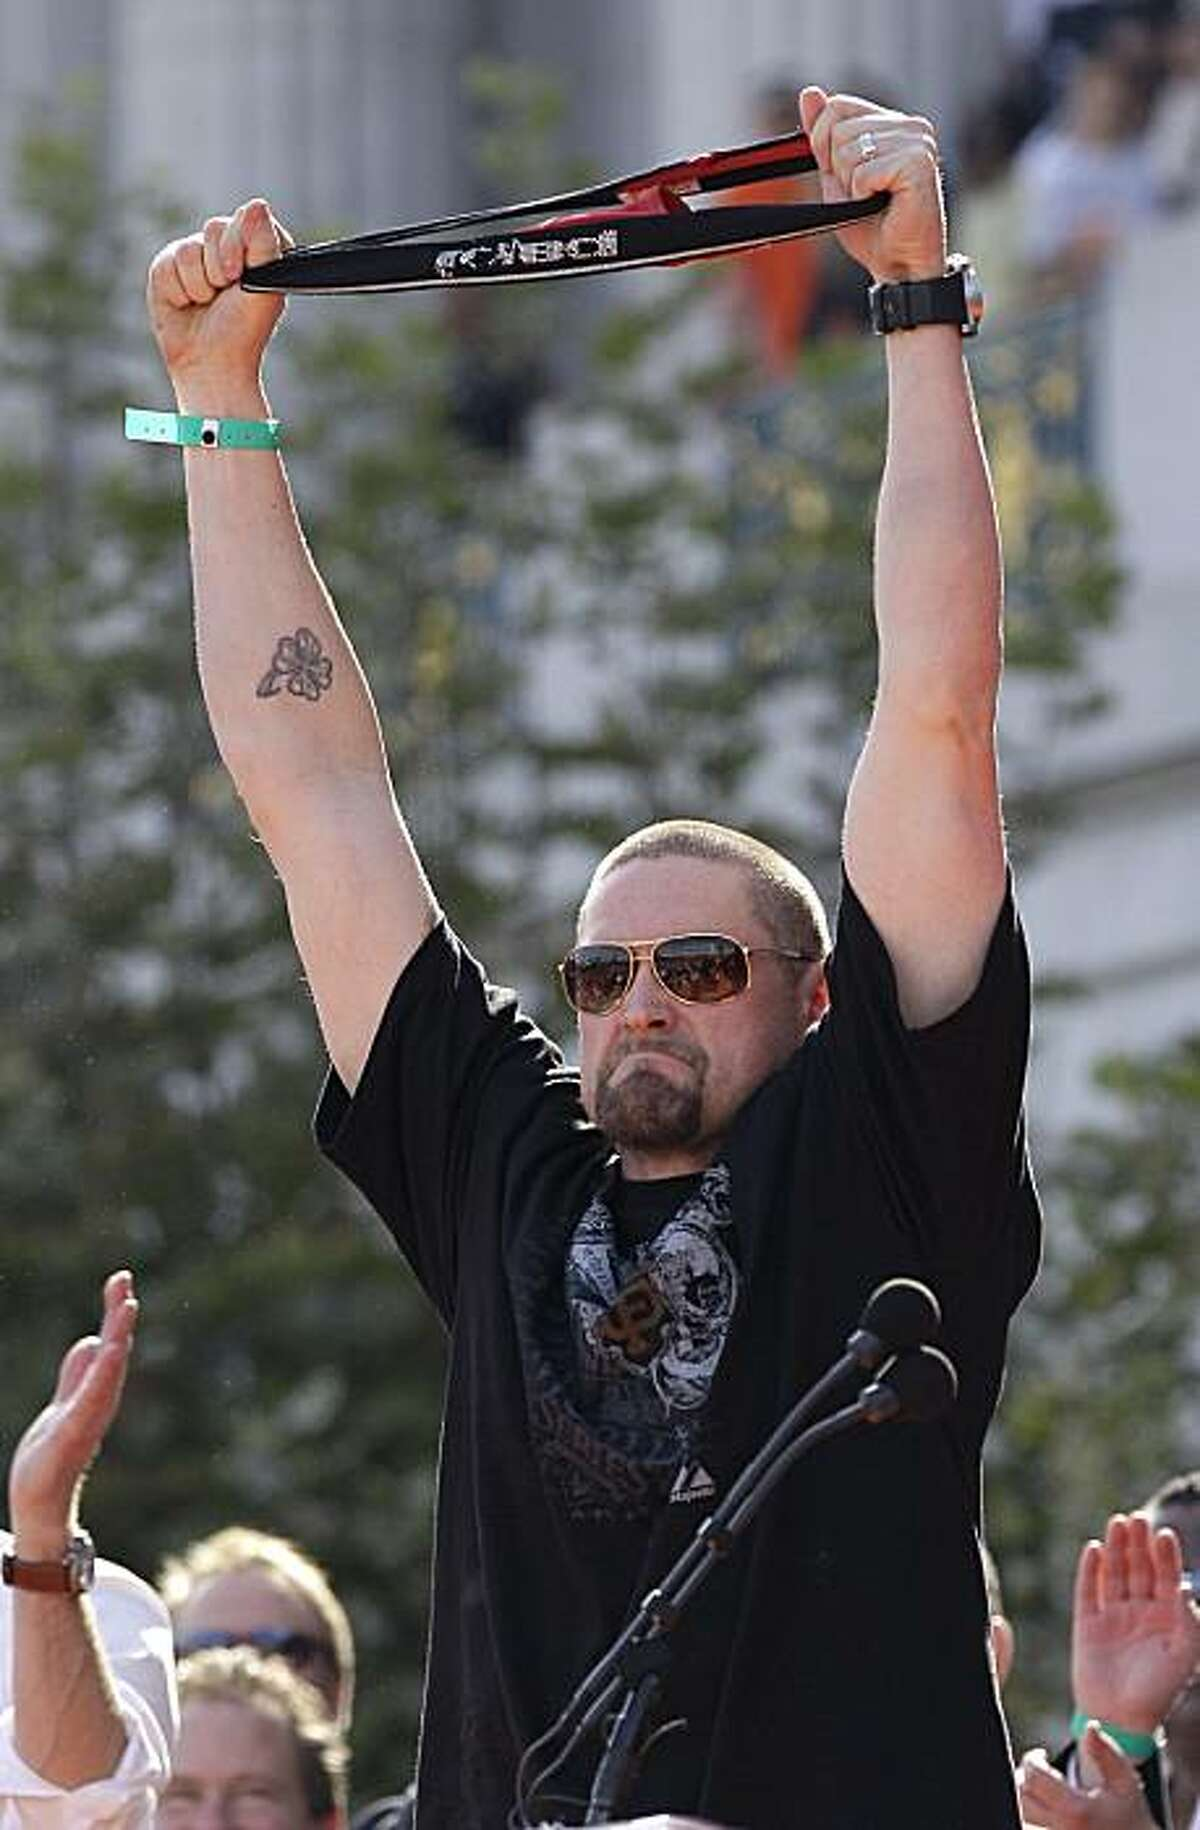 San Franicisco Giants baseball player Aubrey Huff holds up his lucky red rally thong he wore this season during the Giants' World Series victory celebration at Civic Center Plaza in San Francisco, Wednesday, Nov. 3, 2010.